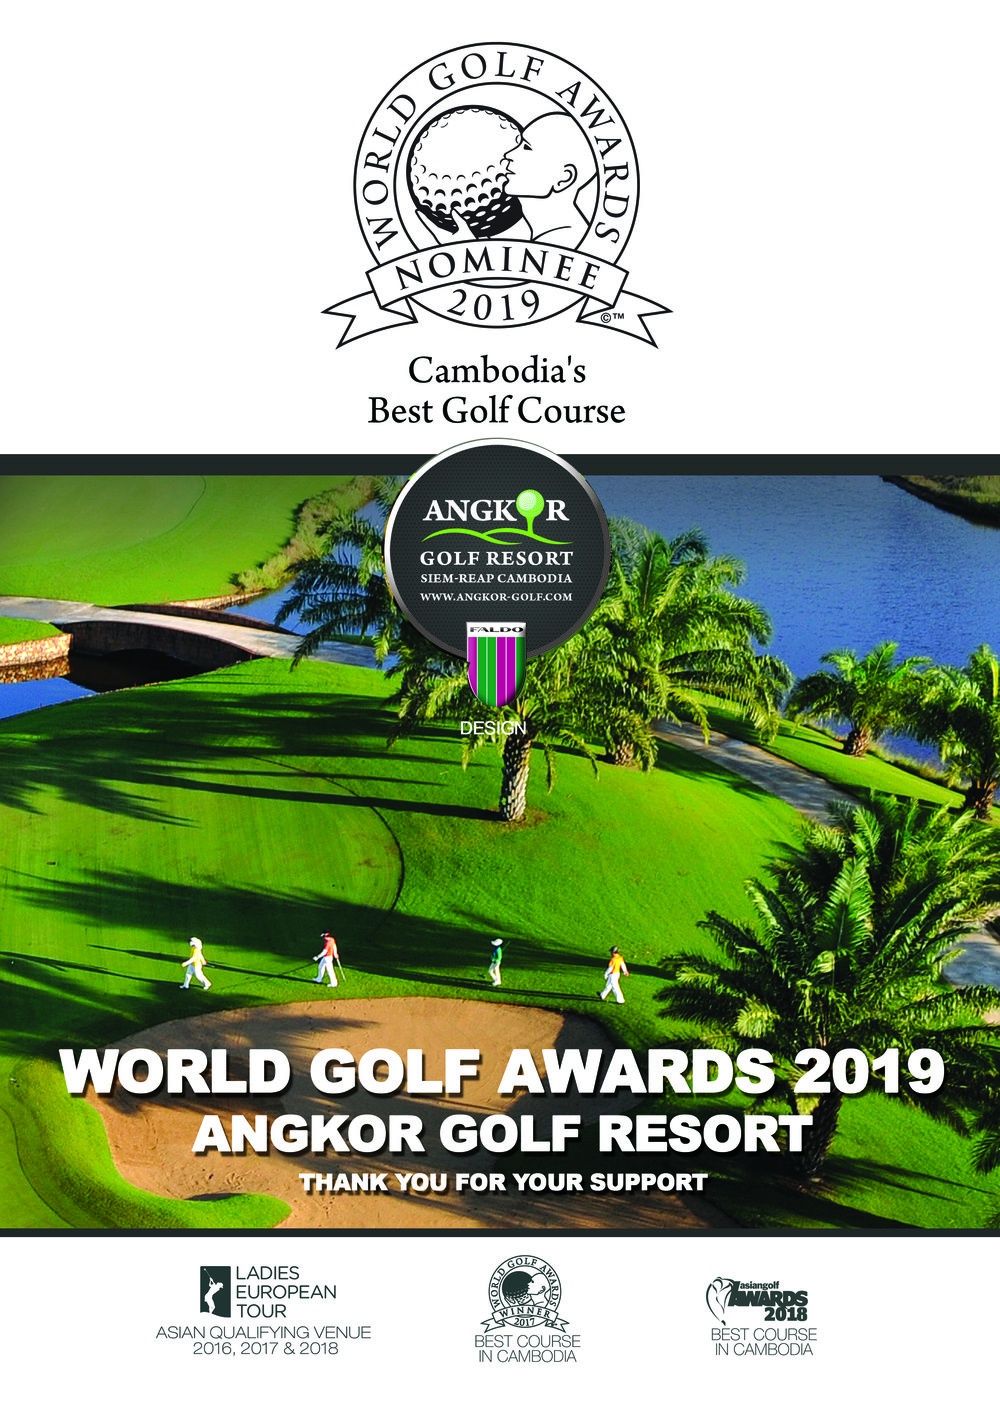 world golf award voting.jpg